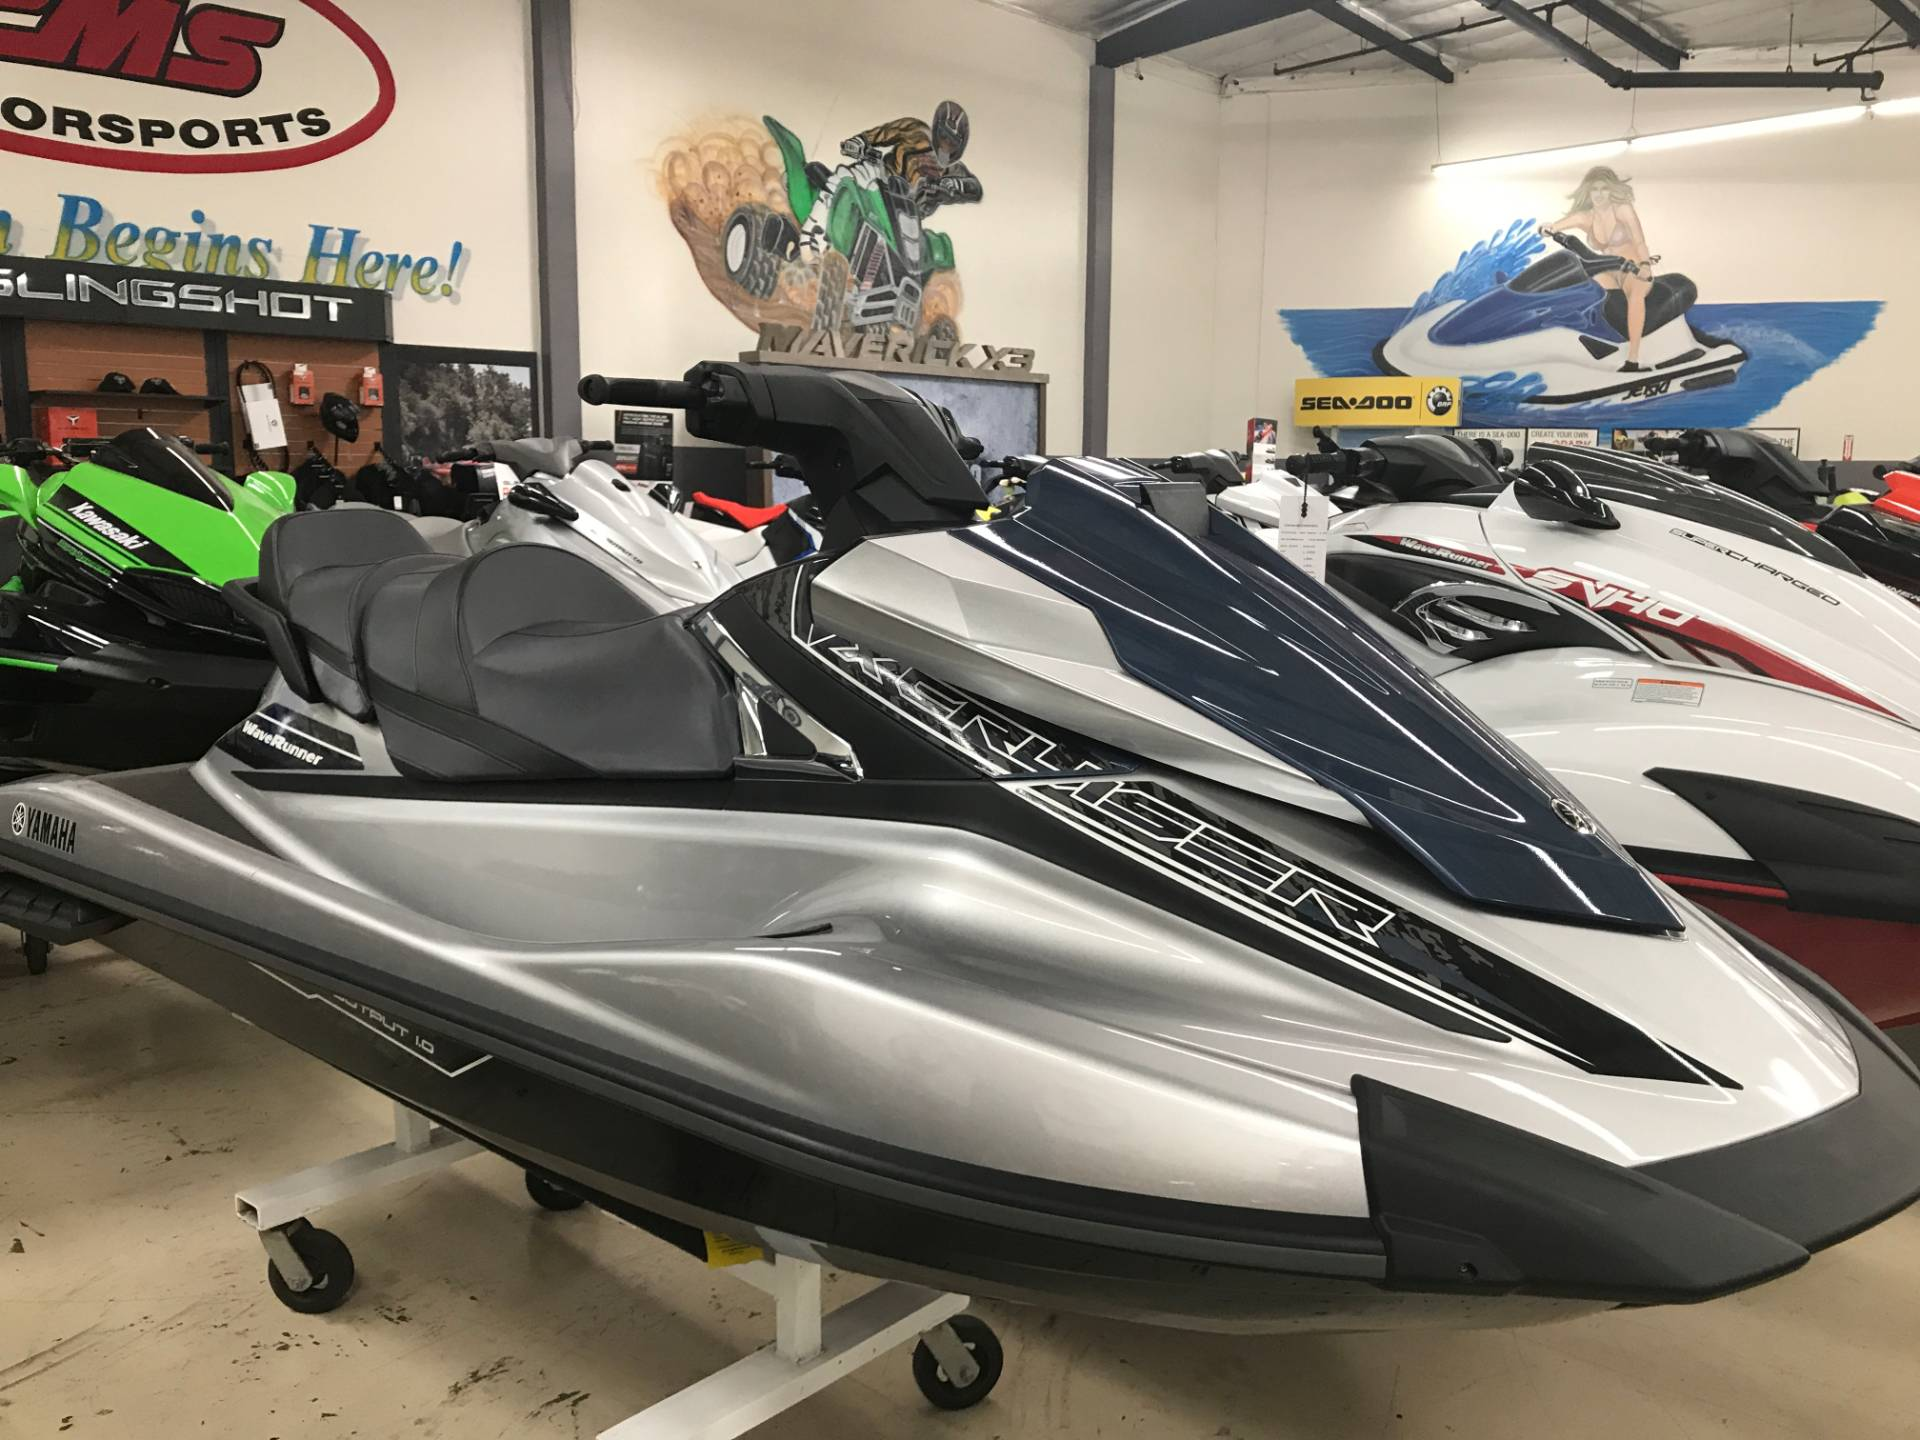 2016 Yamaha VX Cruiser for sale 24506